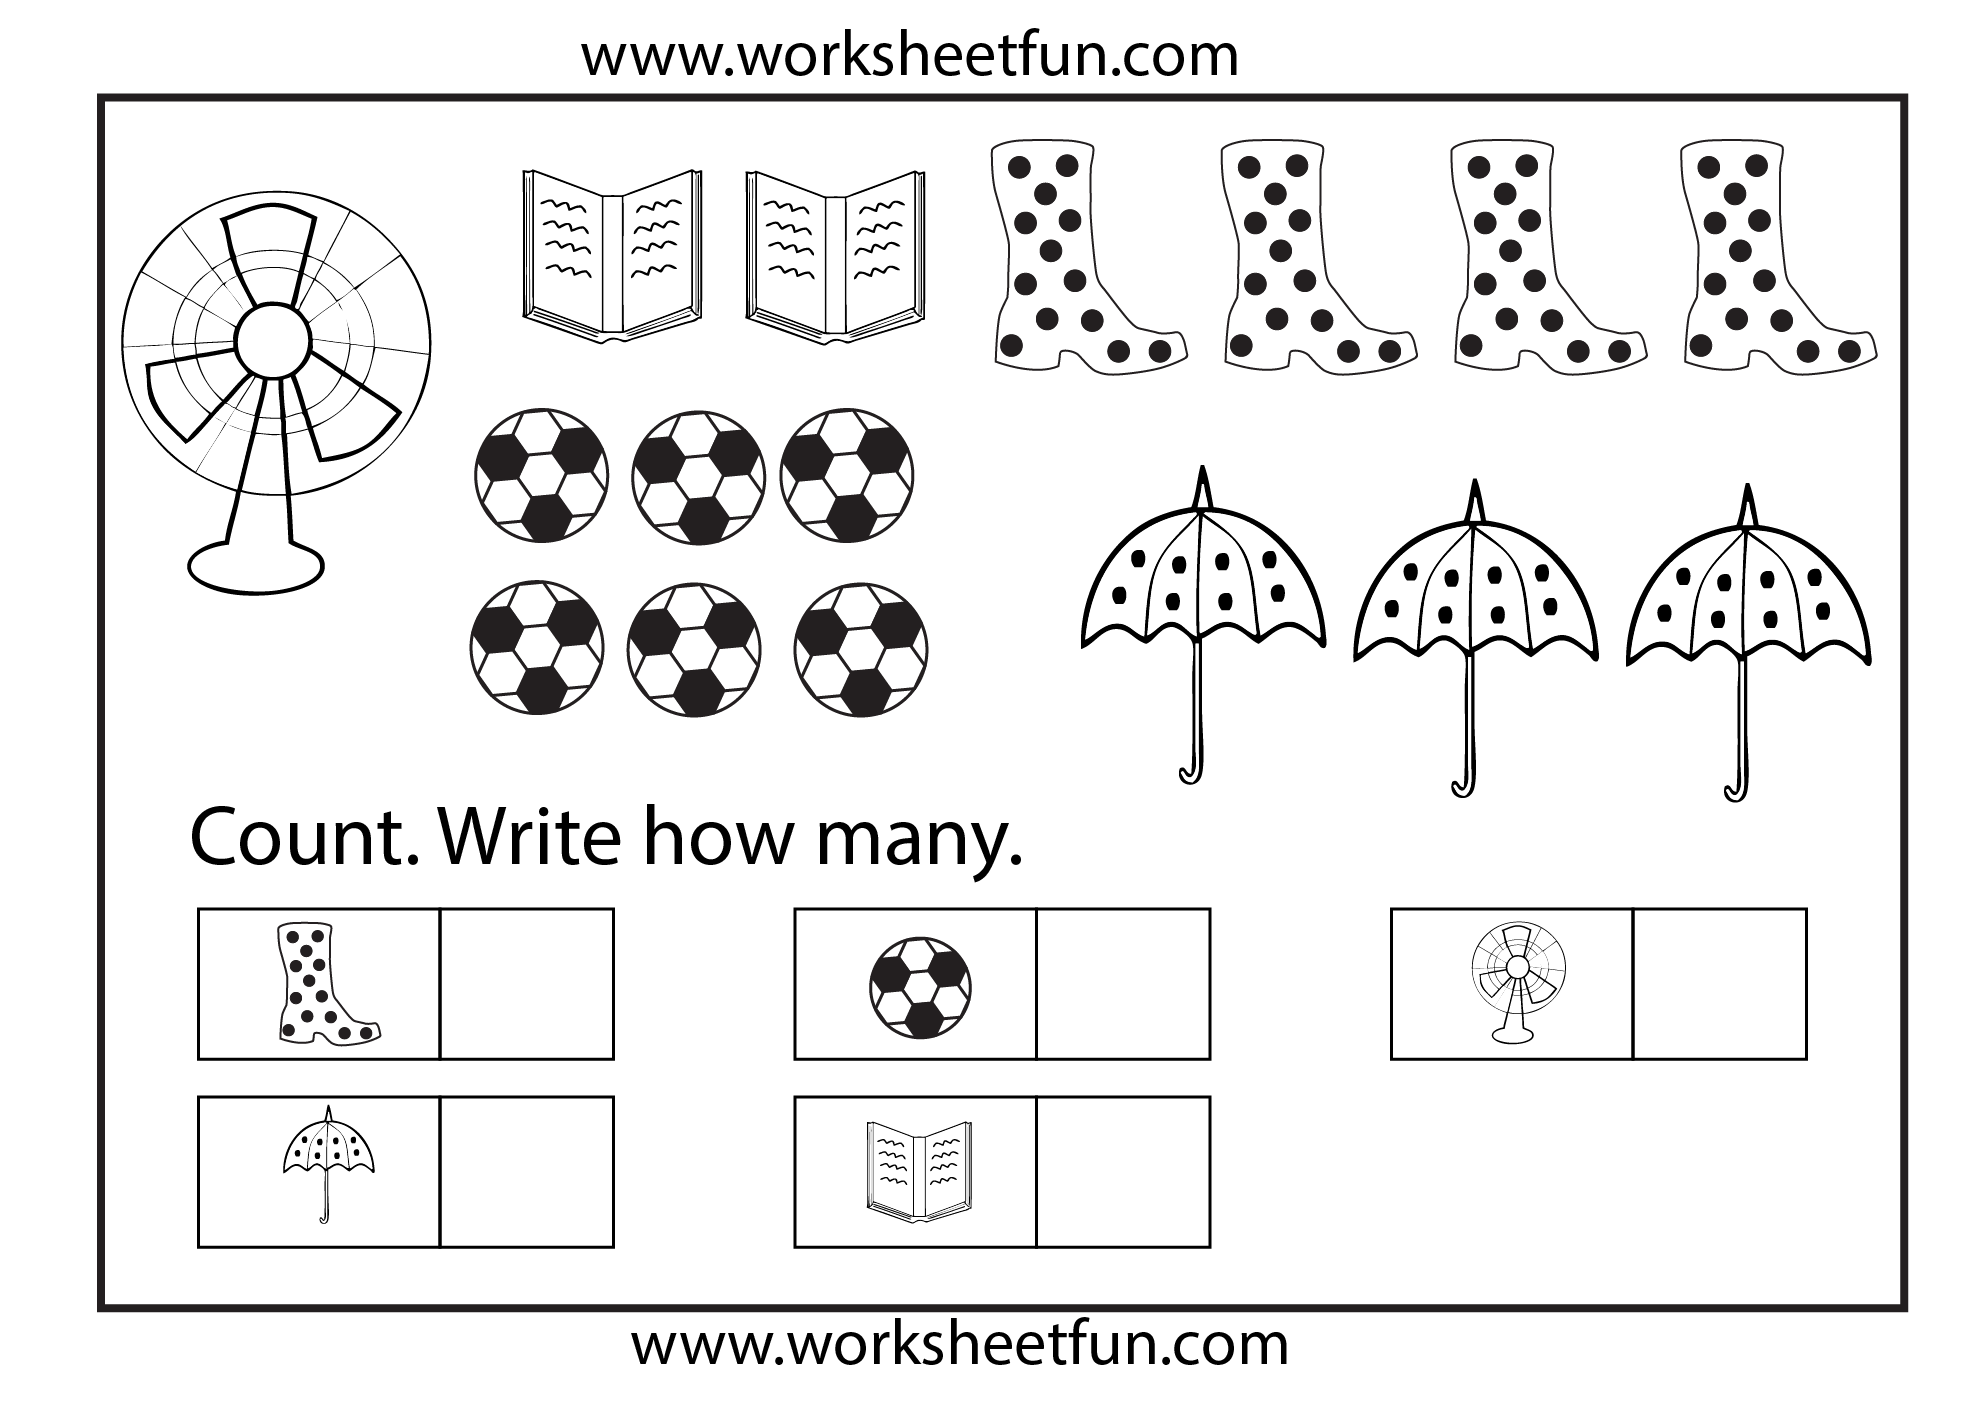 Worksheets Counting Worksheets For Kindergarten worksheet 19891406 1 10 worksheets for kindergarten counting learning numbers scalien kindergarten